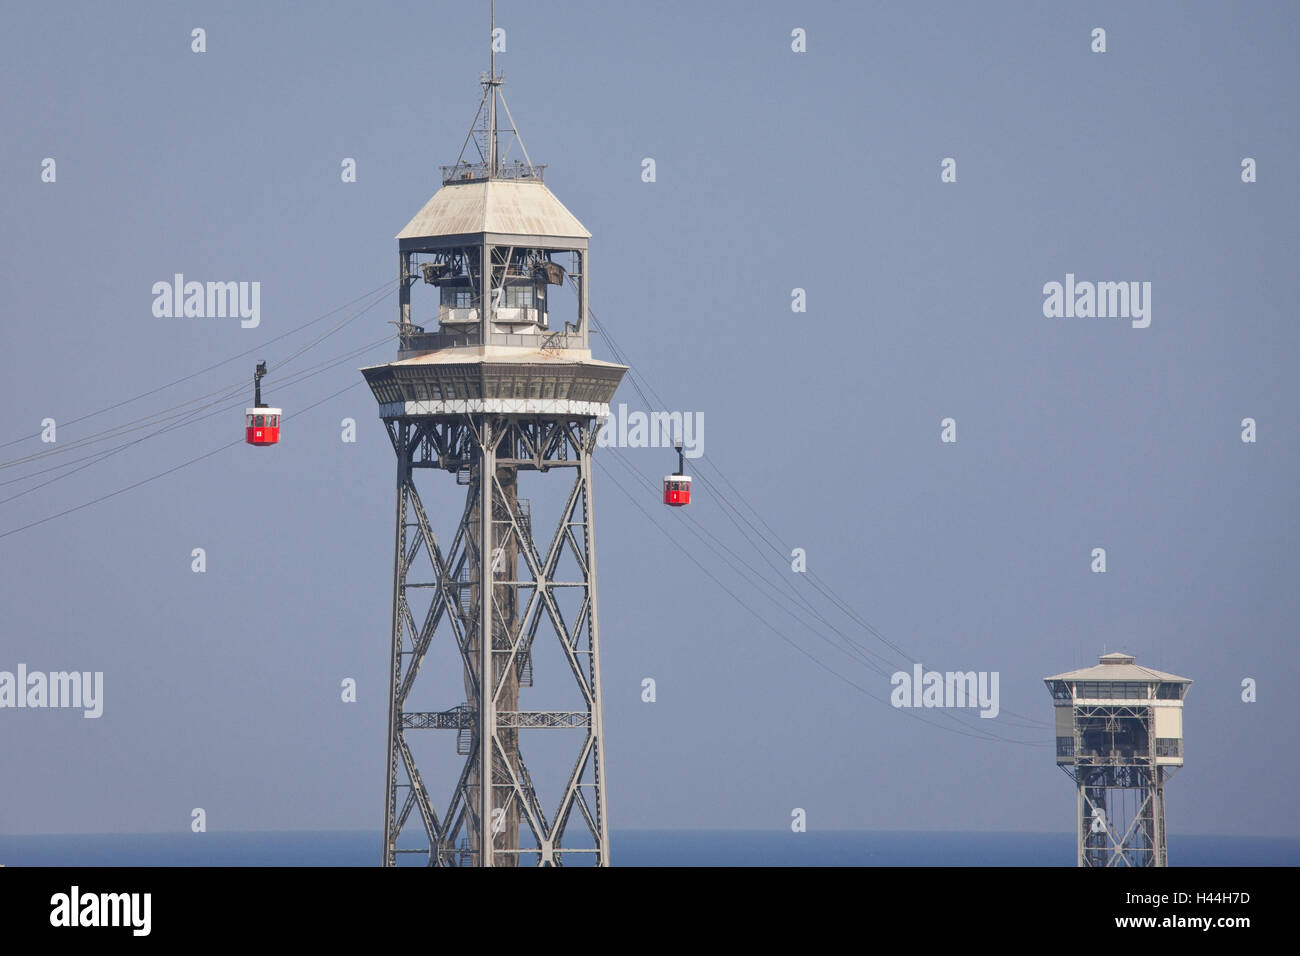 Spain, Catalonia, Barcelona, Torre Jaume I, cable car, - Stock Image